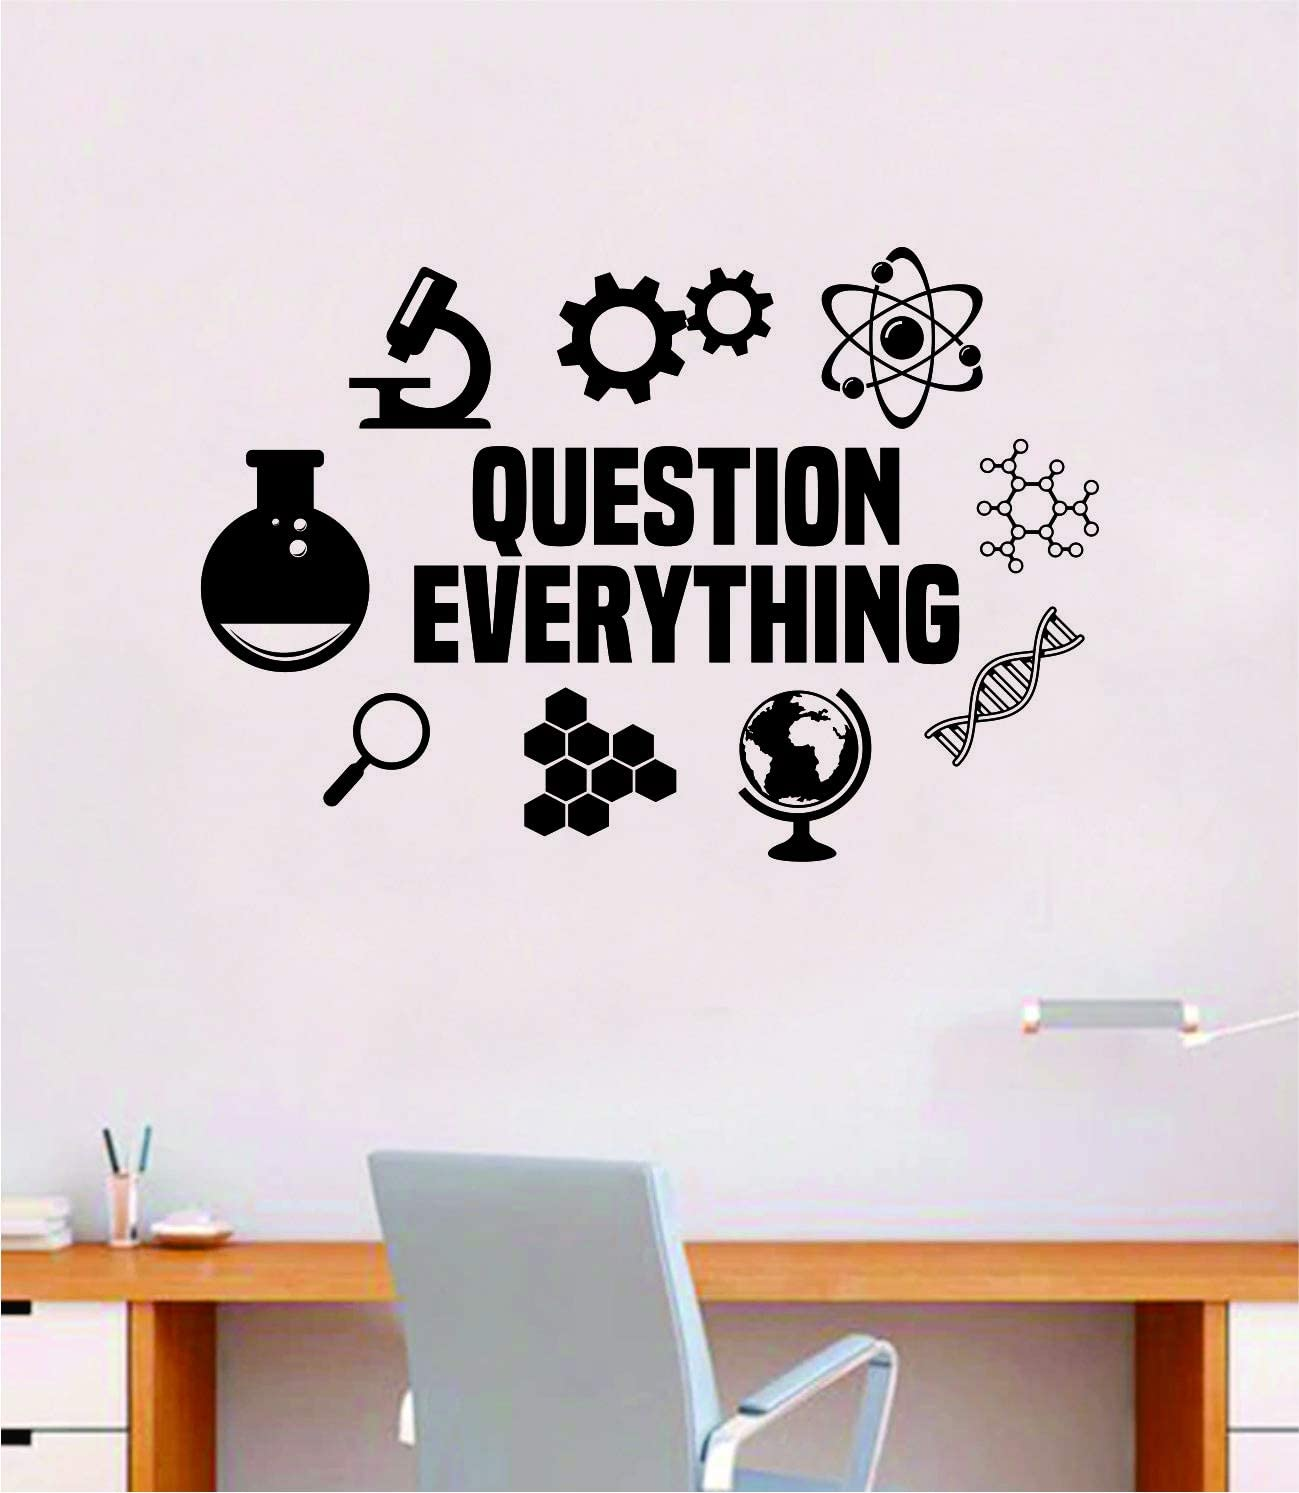 Question Everything V2 Science Wall Decal Sticker Vinyl Art Room Decor Decoration Teen Quote Inspirational Boy Girl Baby Chemistry School Teach Class College Smart Atom DNA Earth Gears Molecule Geek